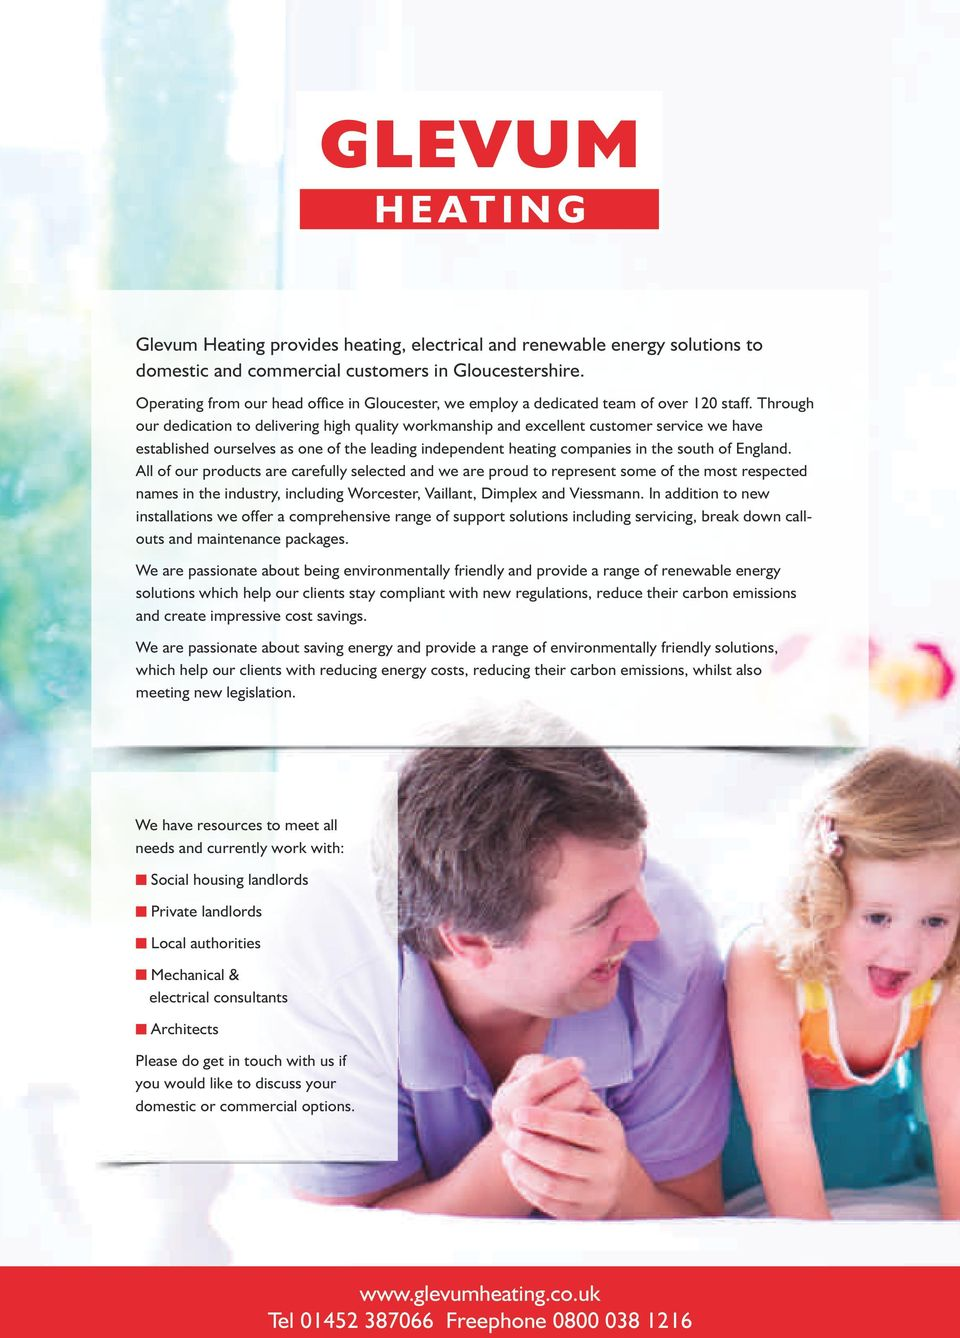 Through our dedication to delivering high quality workmanship and excellent customer service we have established ourselves as one of the leading independent heating companies in the south of England.